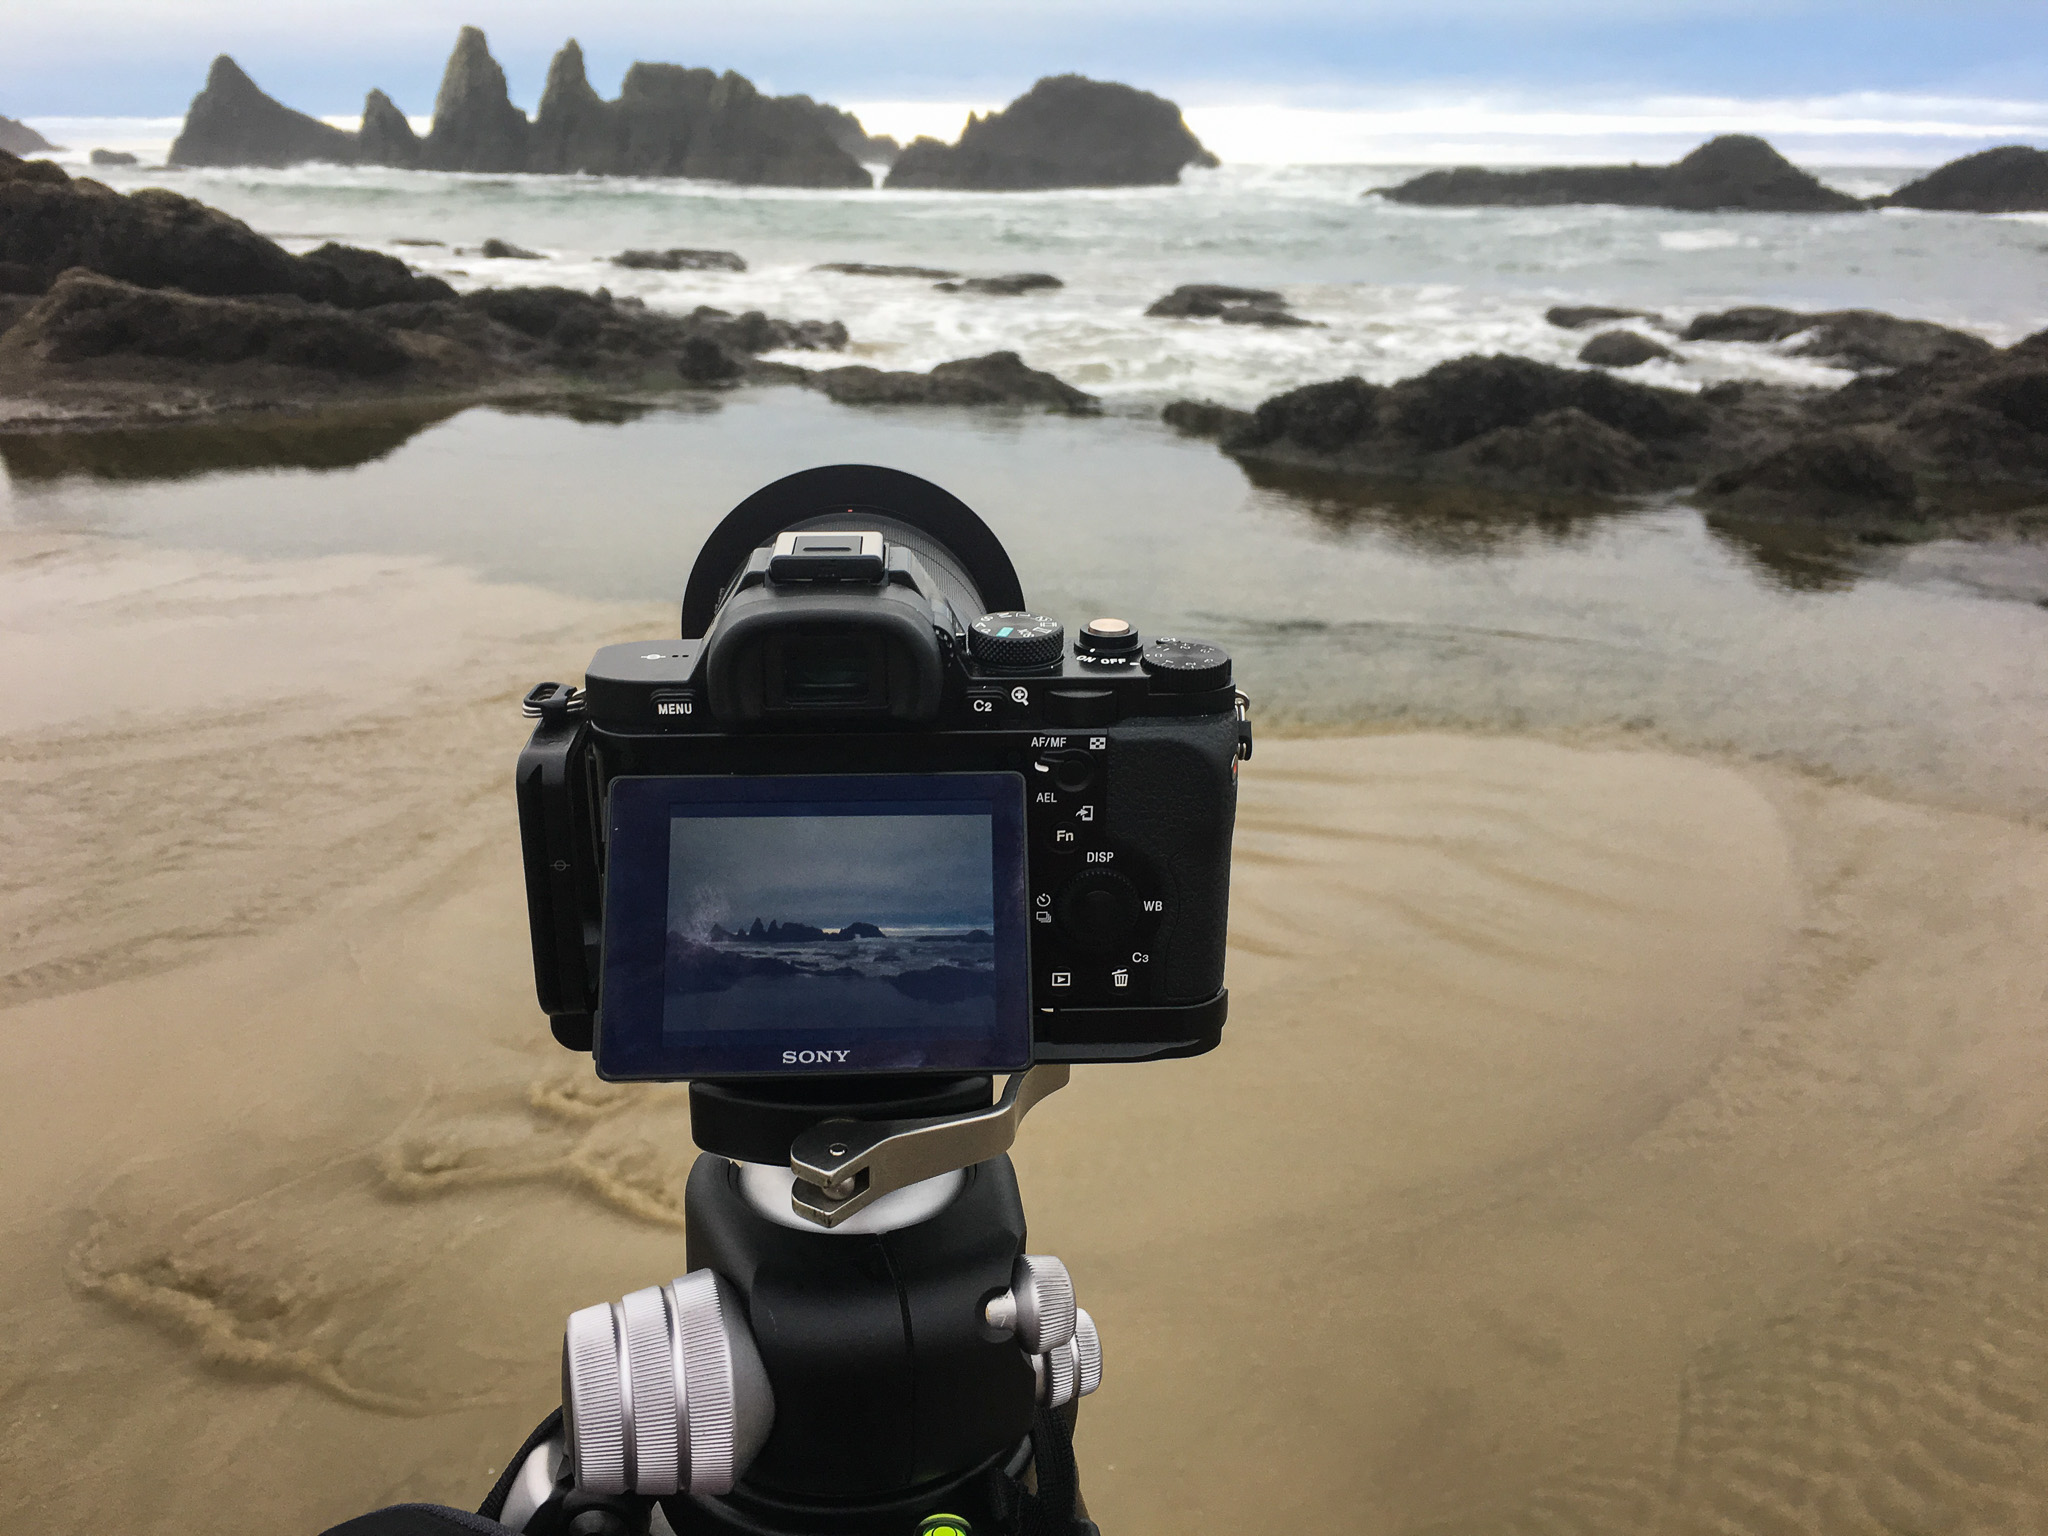 Sony A7R and Really Right Stuff Tripod capture Seal Rock Beach, Oregon